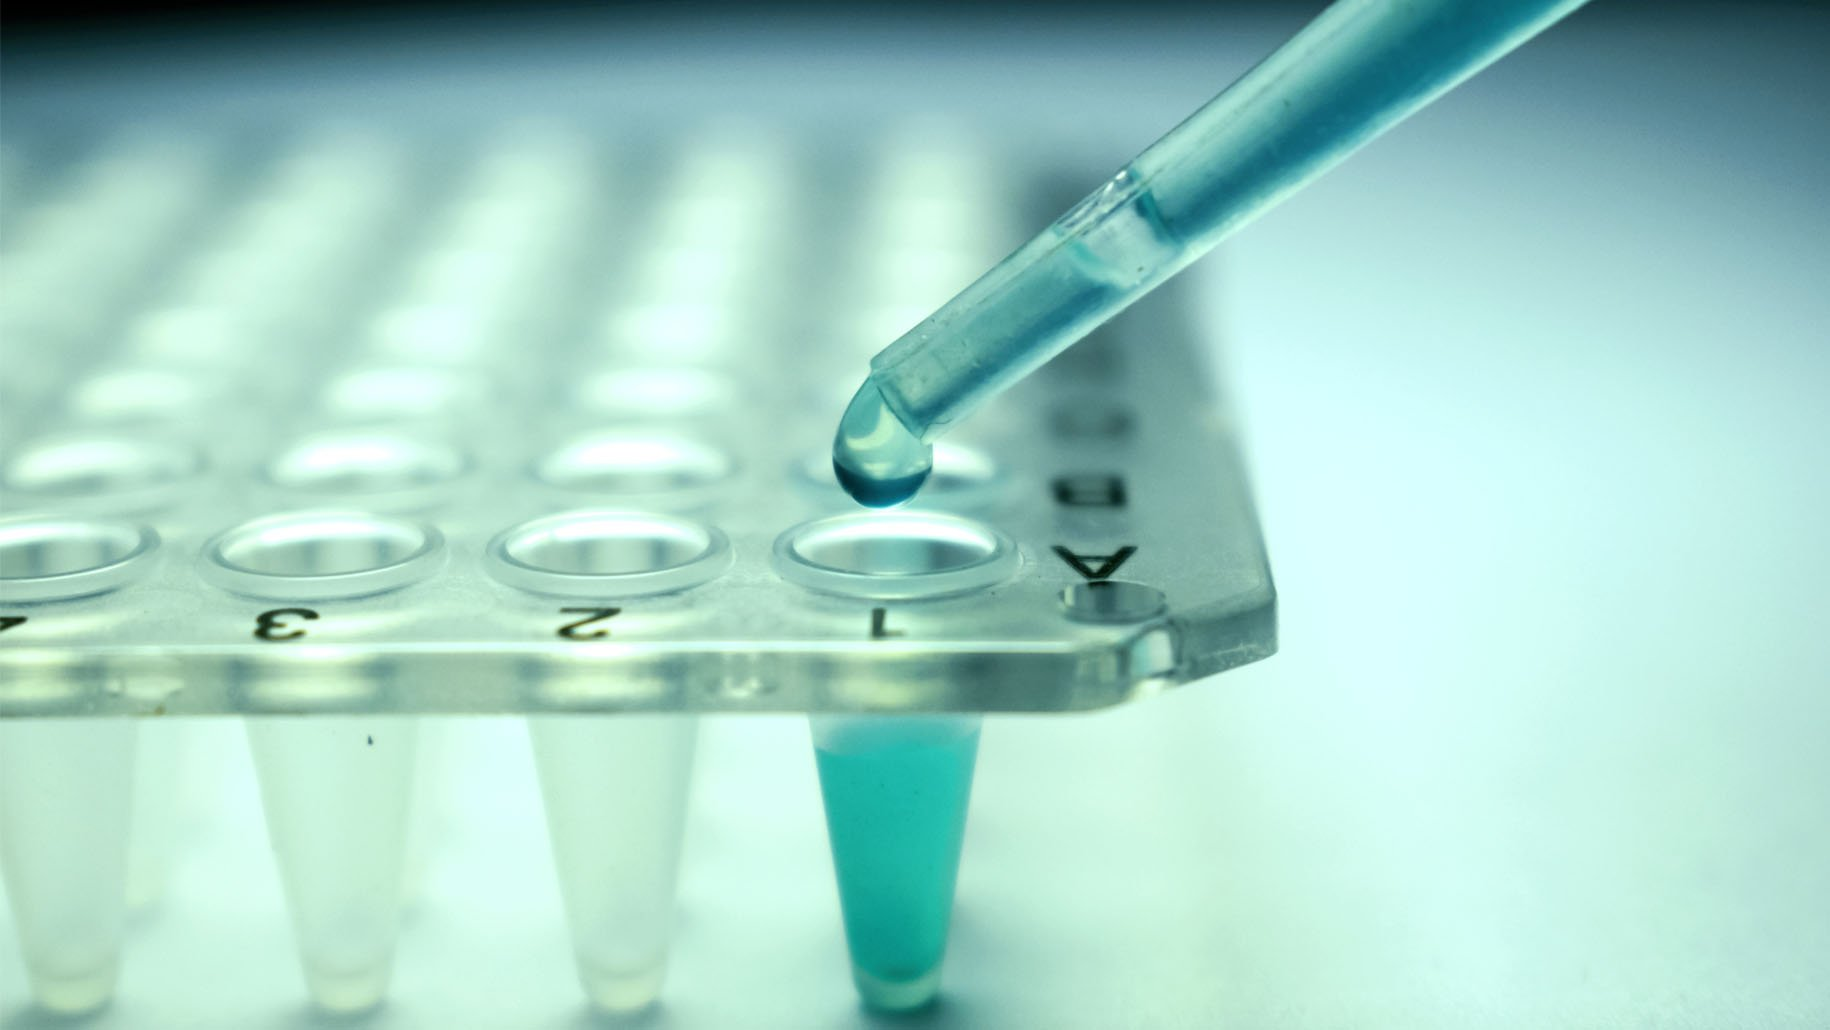 Stem Cell Research Pipette